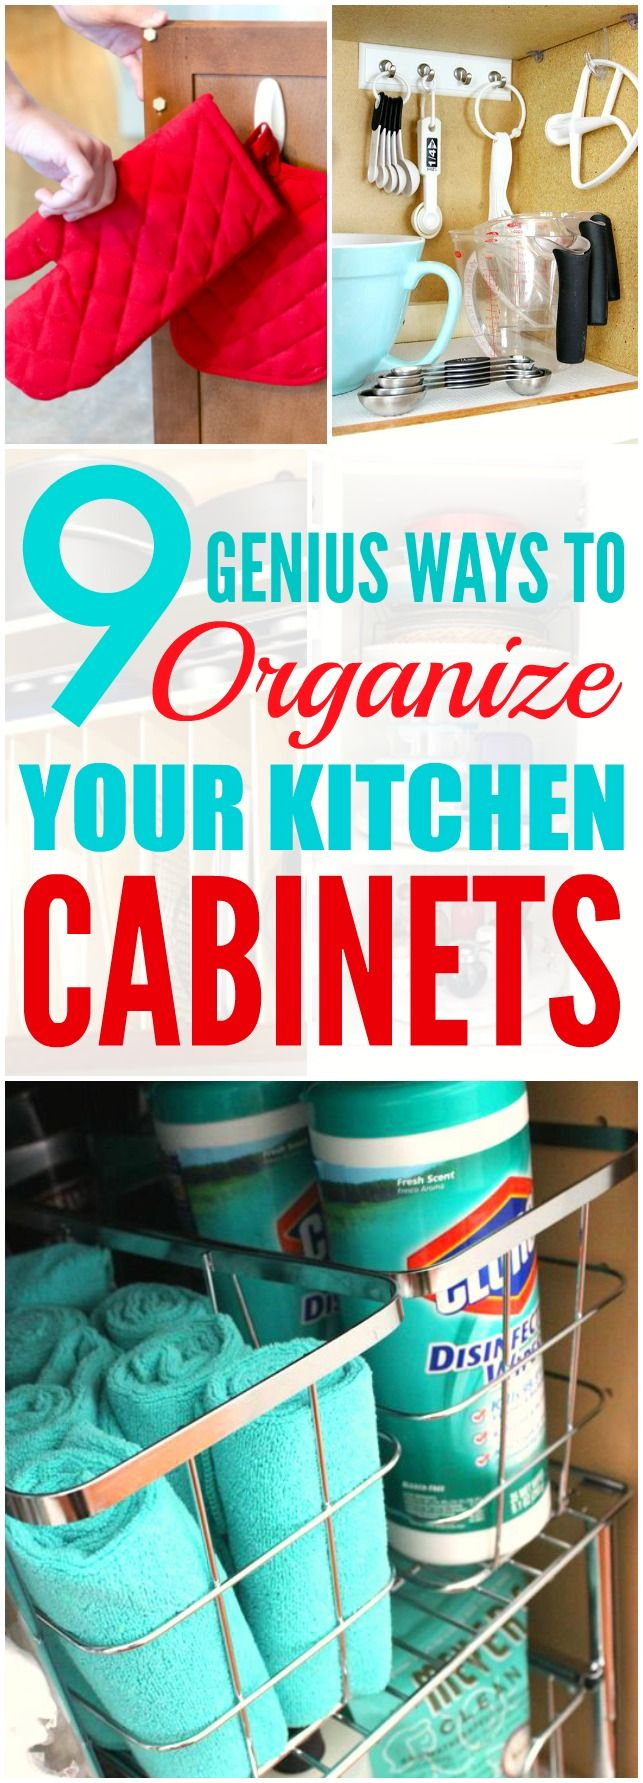 These 9 Genius Ways to Organize Your Kitchen Cabinets are THE BEST! I'm so glad I found these AWESOME tips! Now I have some good ways to keep things straight! Definitely pinning for later!